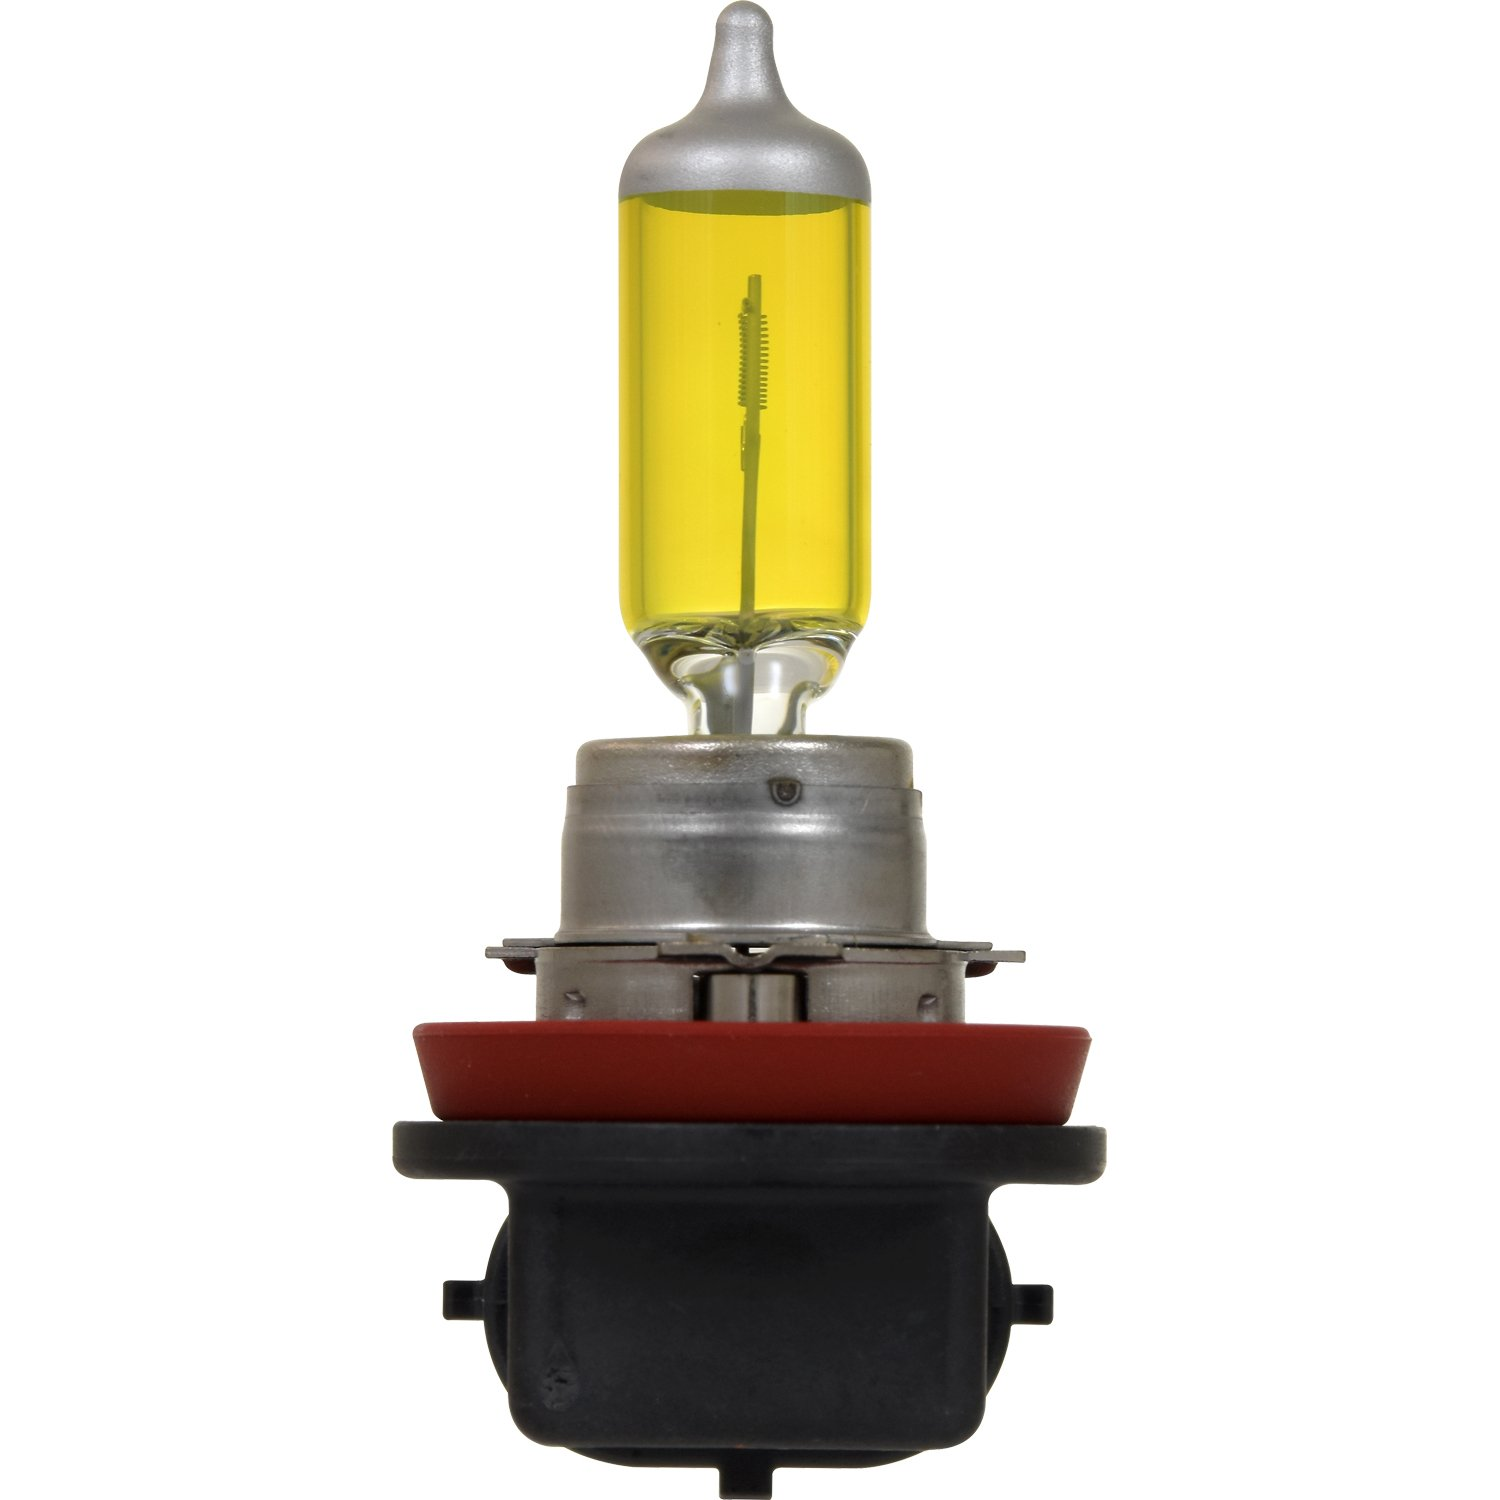 Amazon.com: SYLVANIA - H8 Fog Vision - High Performance Yellow Halogen Fog Lights, Sleek Style & Improved Safety, Street Legal, For Fog Use Only (Contains 2 ...